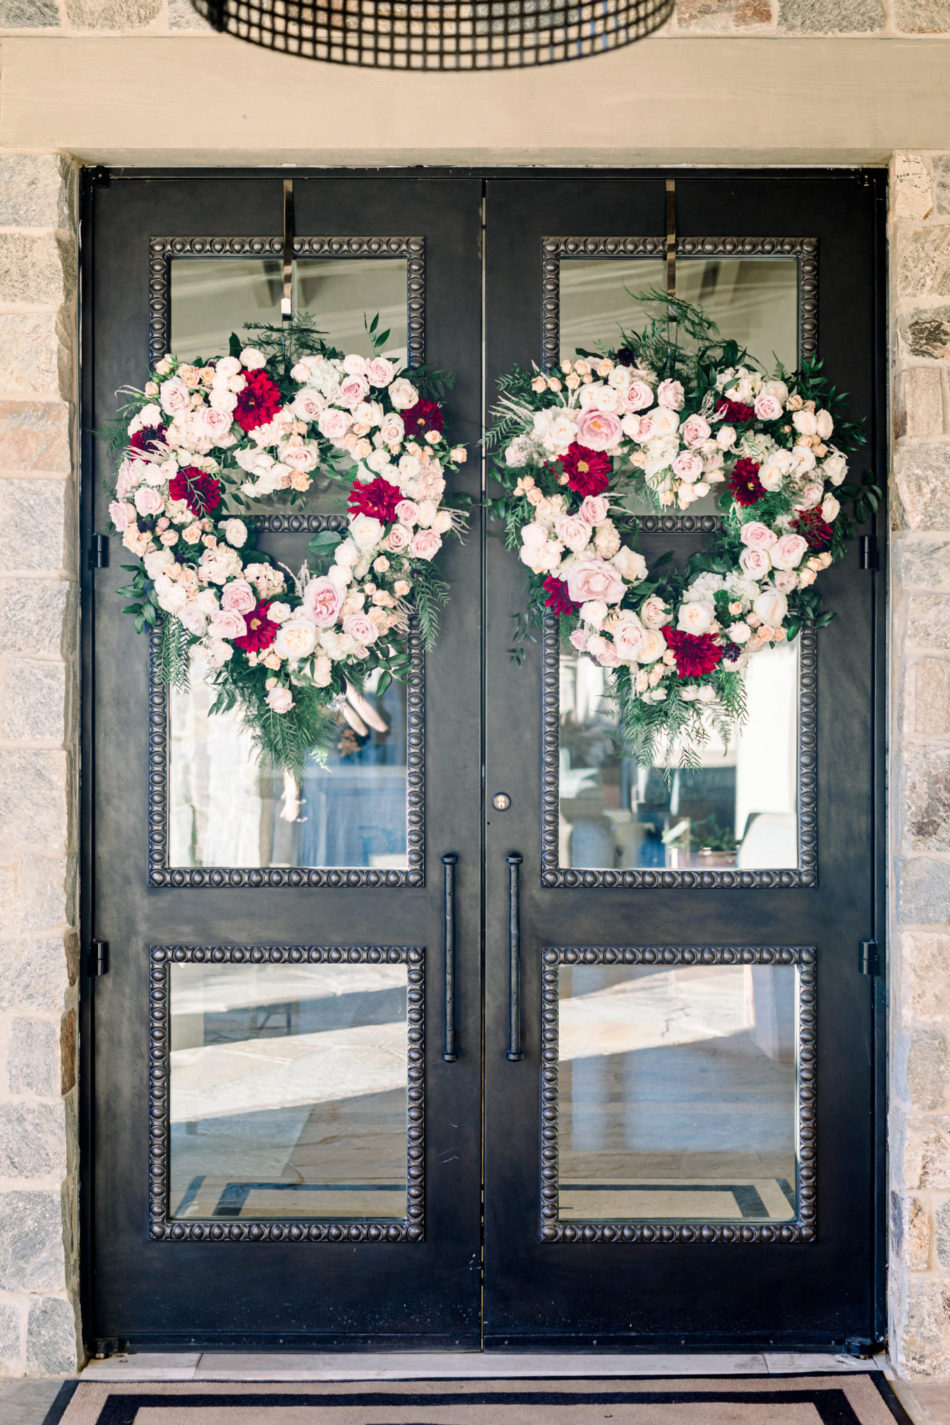 door wreaths, floral-filled wreath, gorgeous floral-filled wedding, floral design, florist, wedding florist, wedding flowers, orange county weddings, orange county wedding florist, orange county florist, orange county floral design, flowers by cina